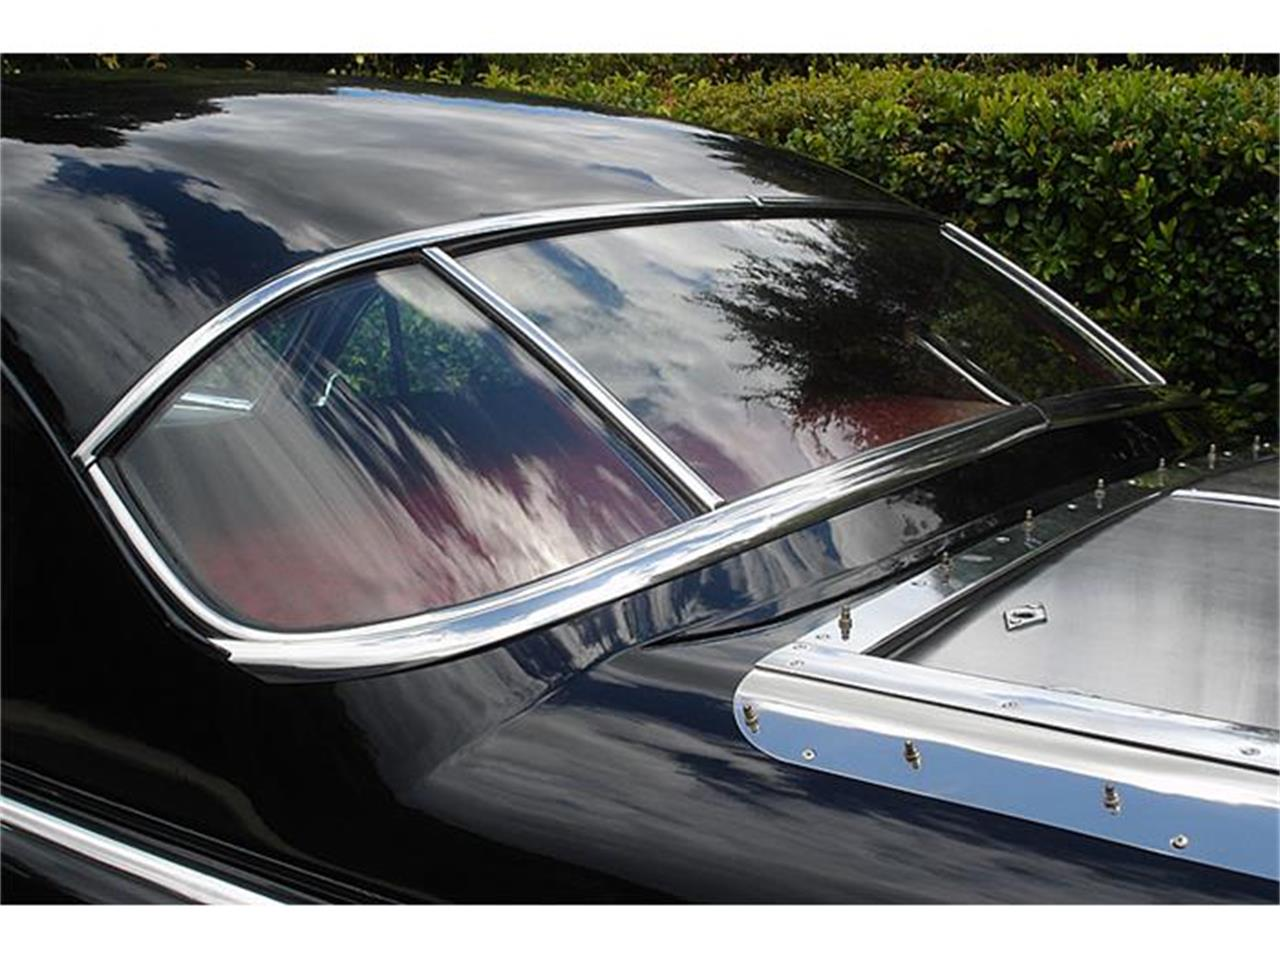 Large Picture of Classic 1952 S&S Florentine - $96,000.00 Offered by Classic Dreamcars, Inc. - FL81